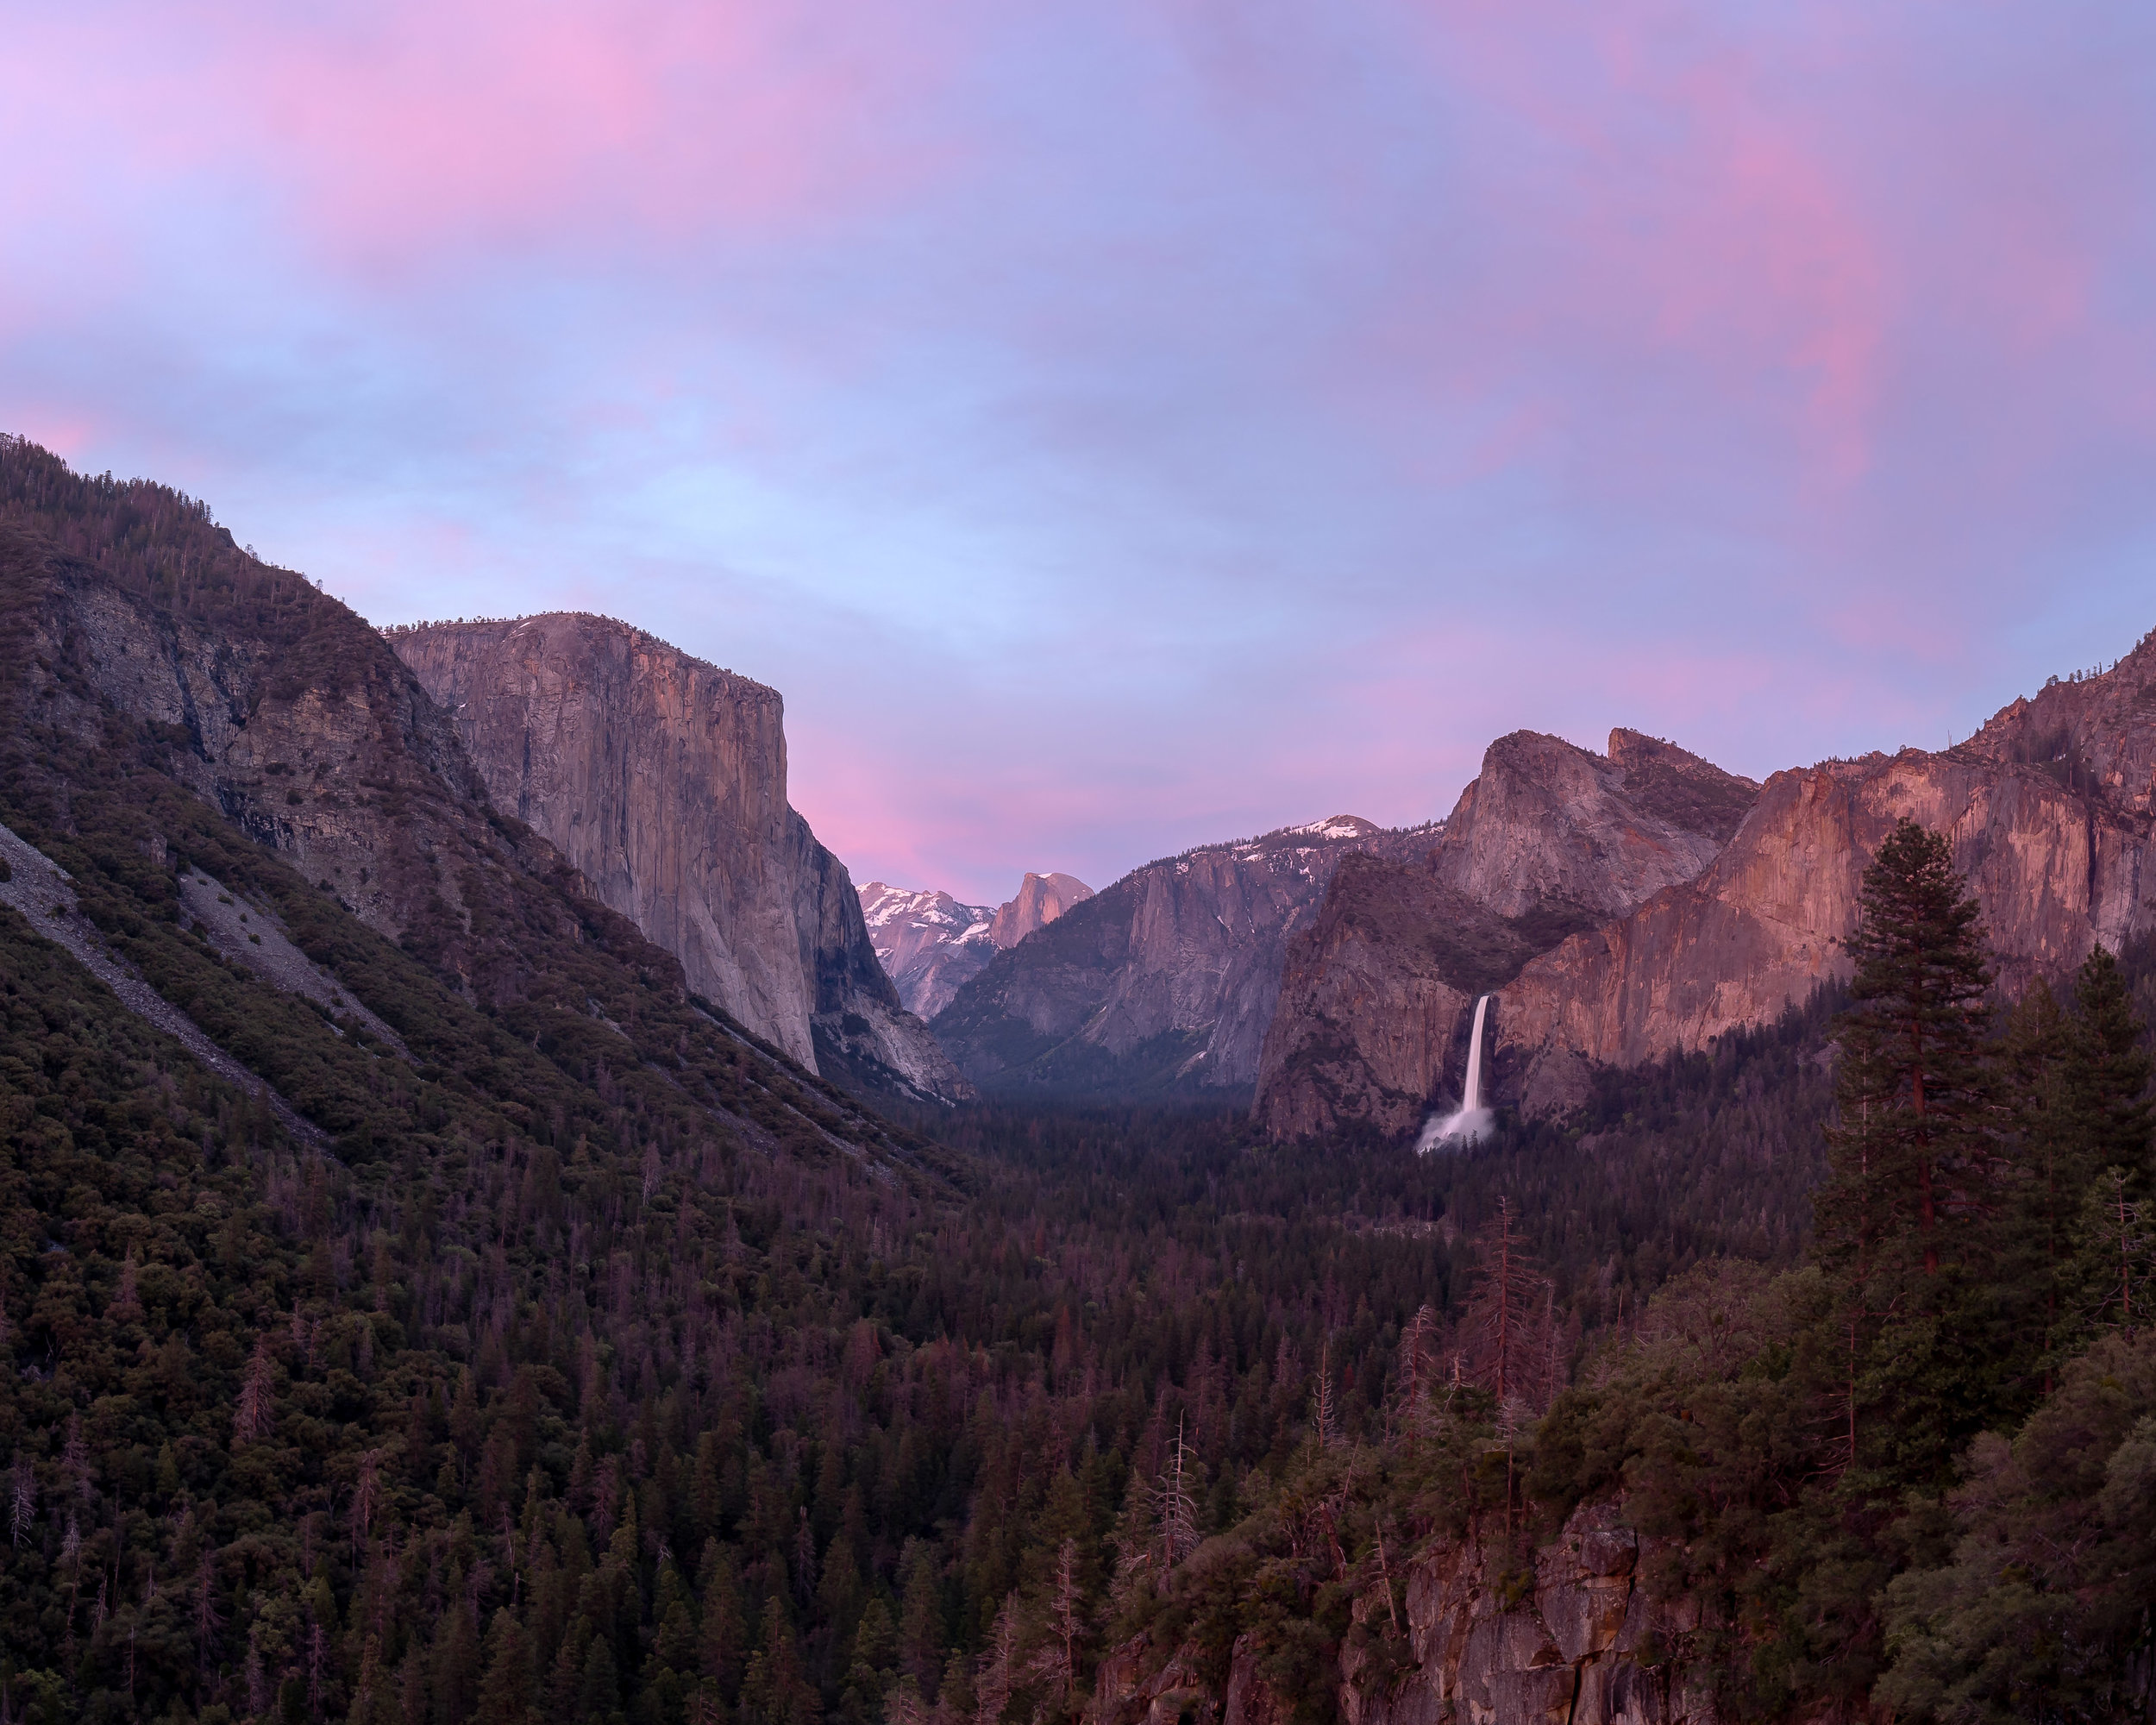 A colorful sunset at Tunnel View in Yosemite National Park